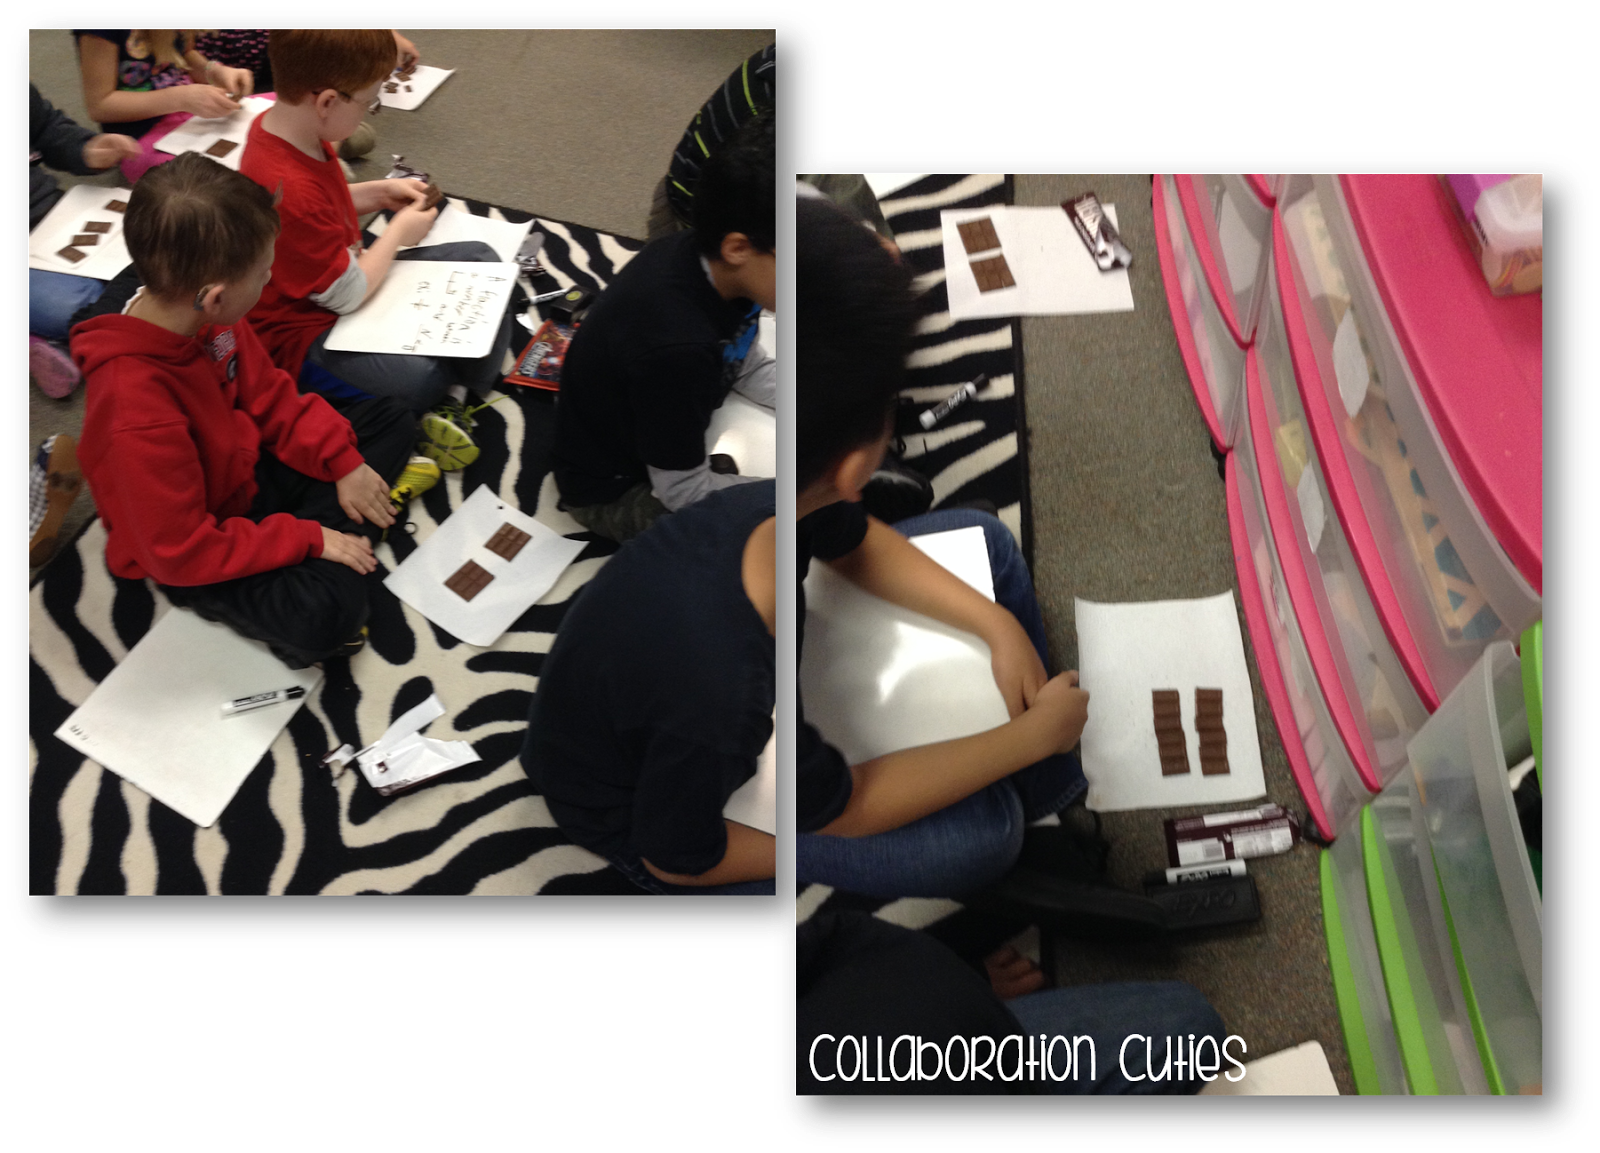 Fraction clipart fraction strip. Collaboration cuties decomposing fractions